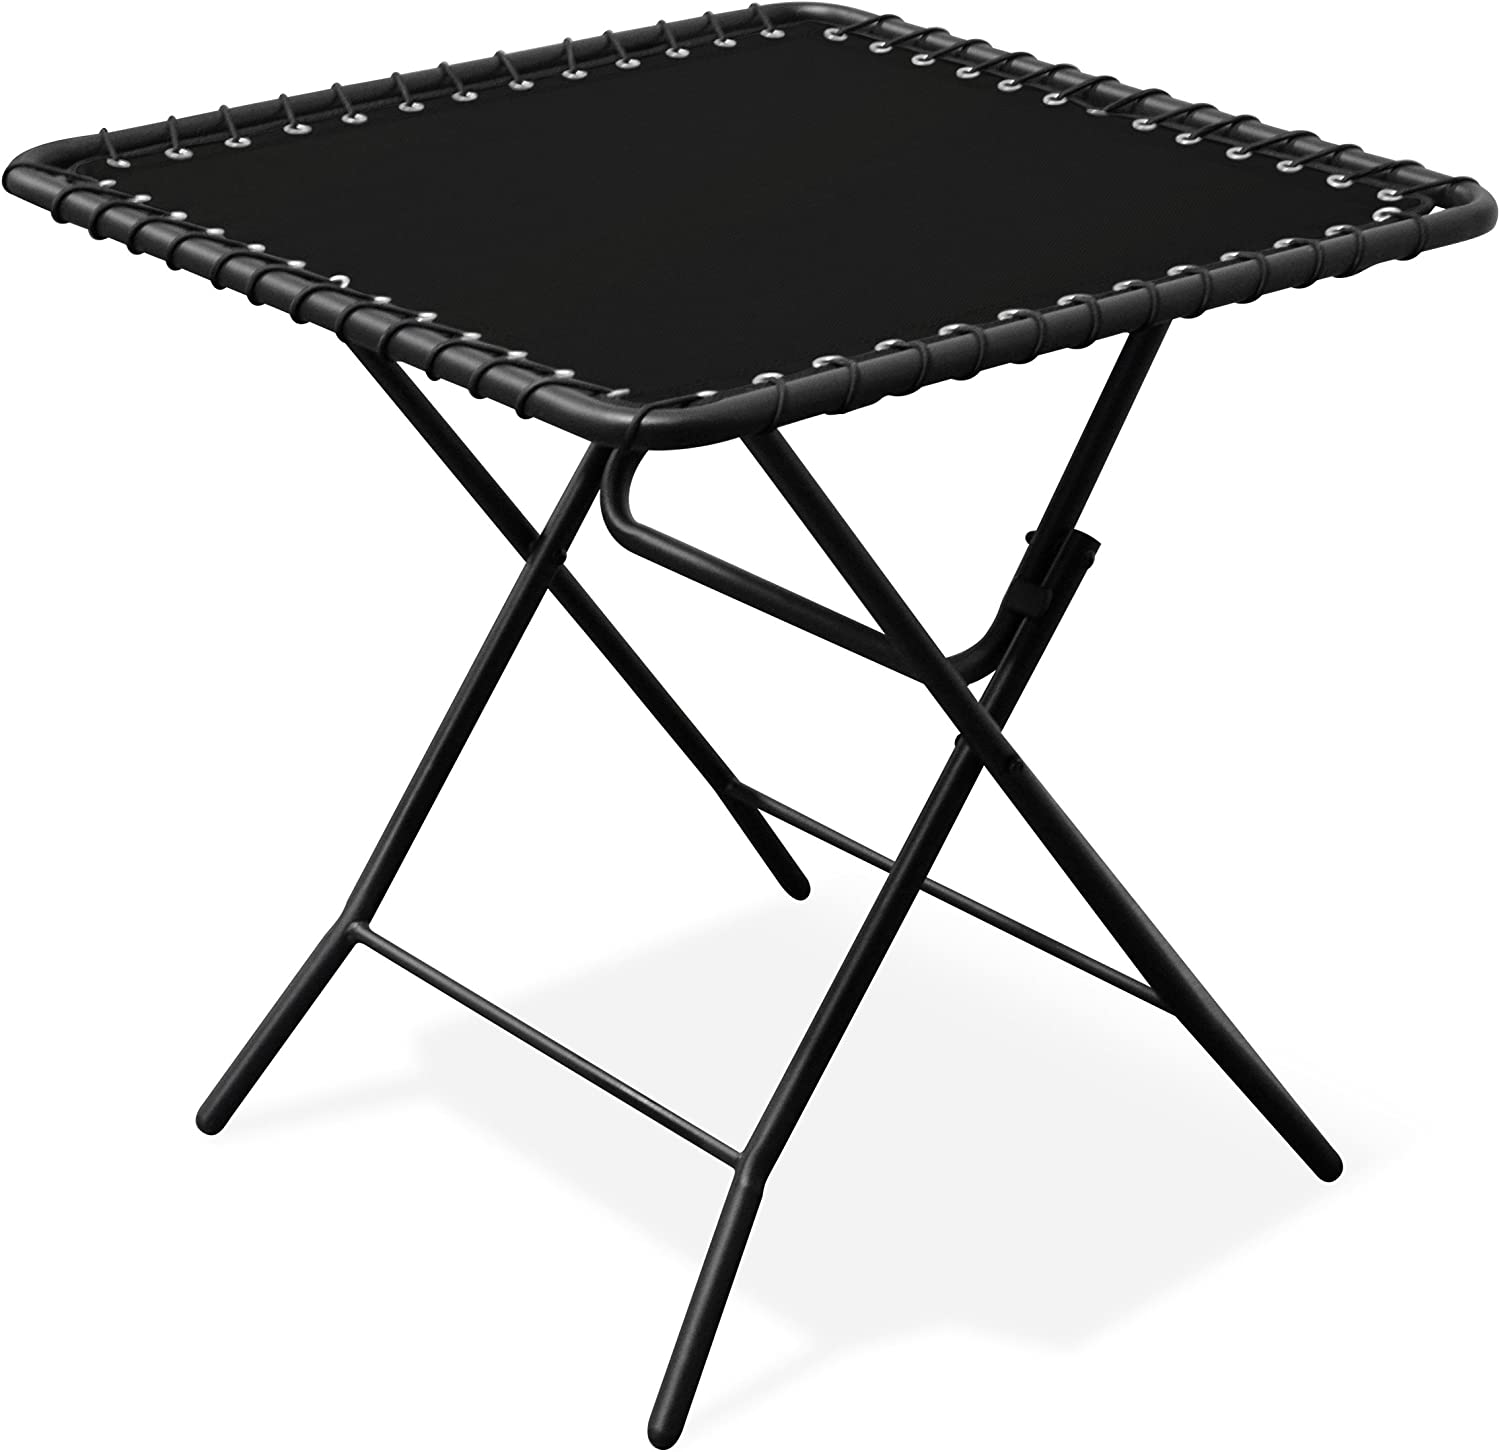 Caravan Sports Textilene Table, Black, Black